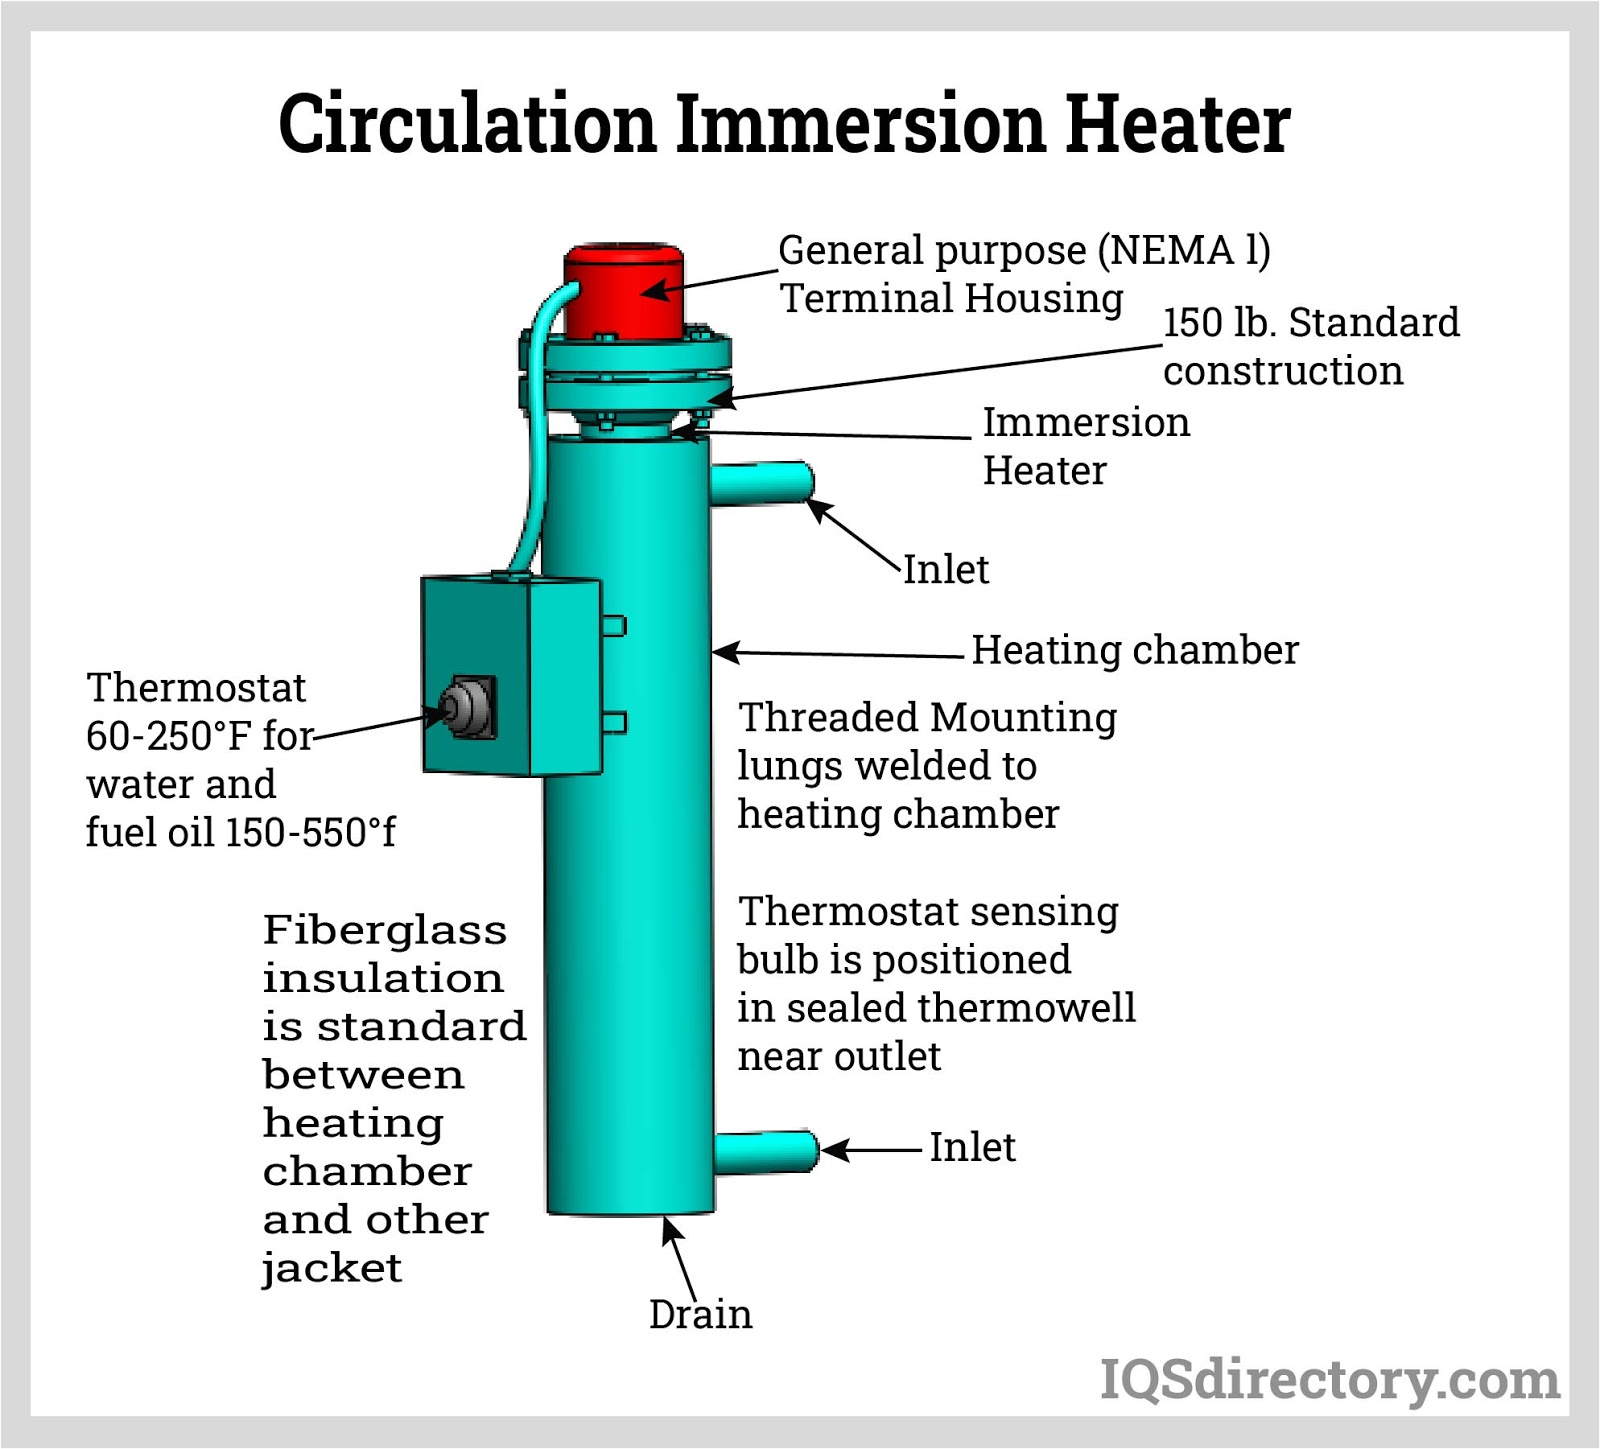 Circulation Immersion Heater